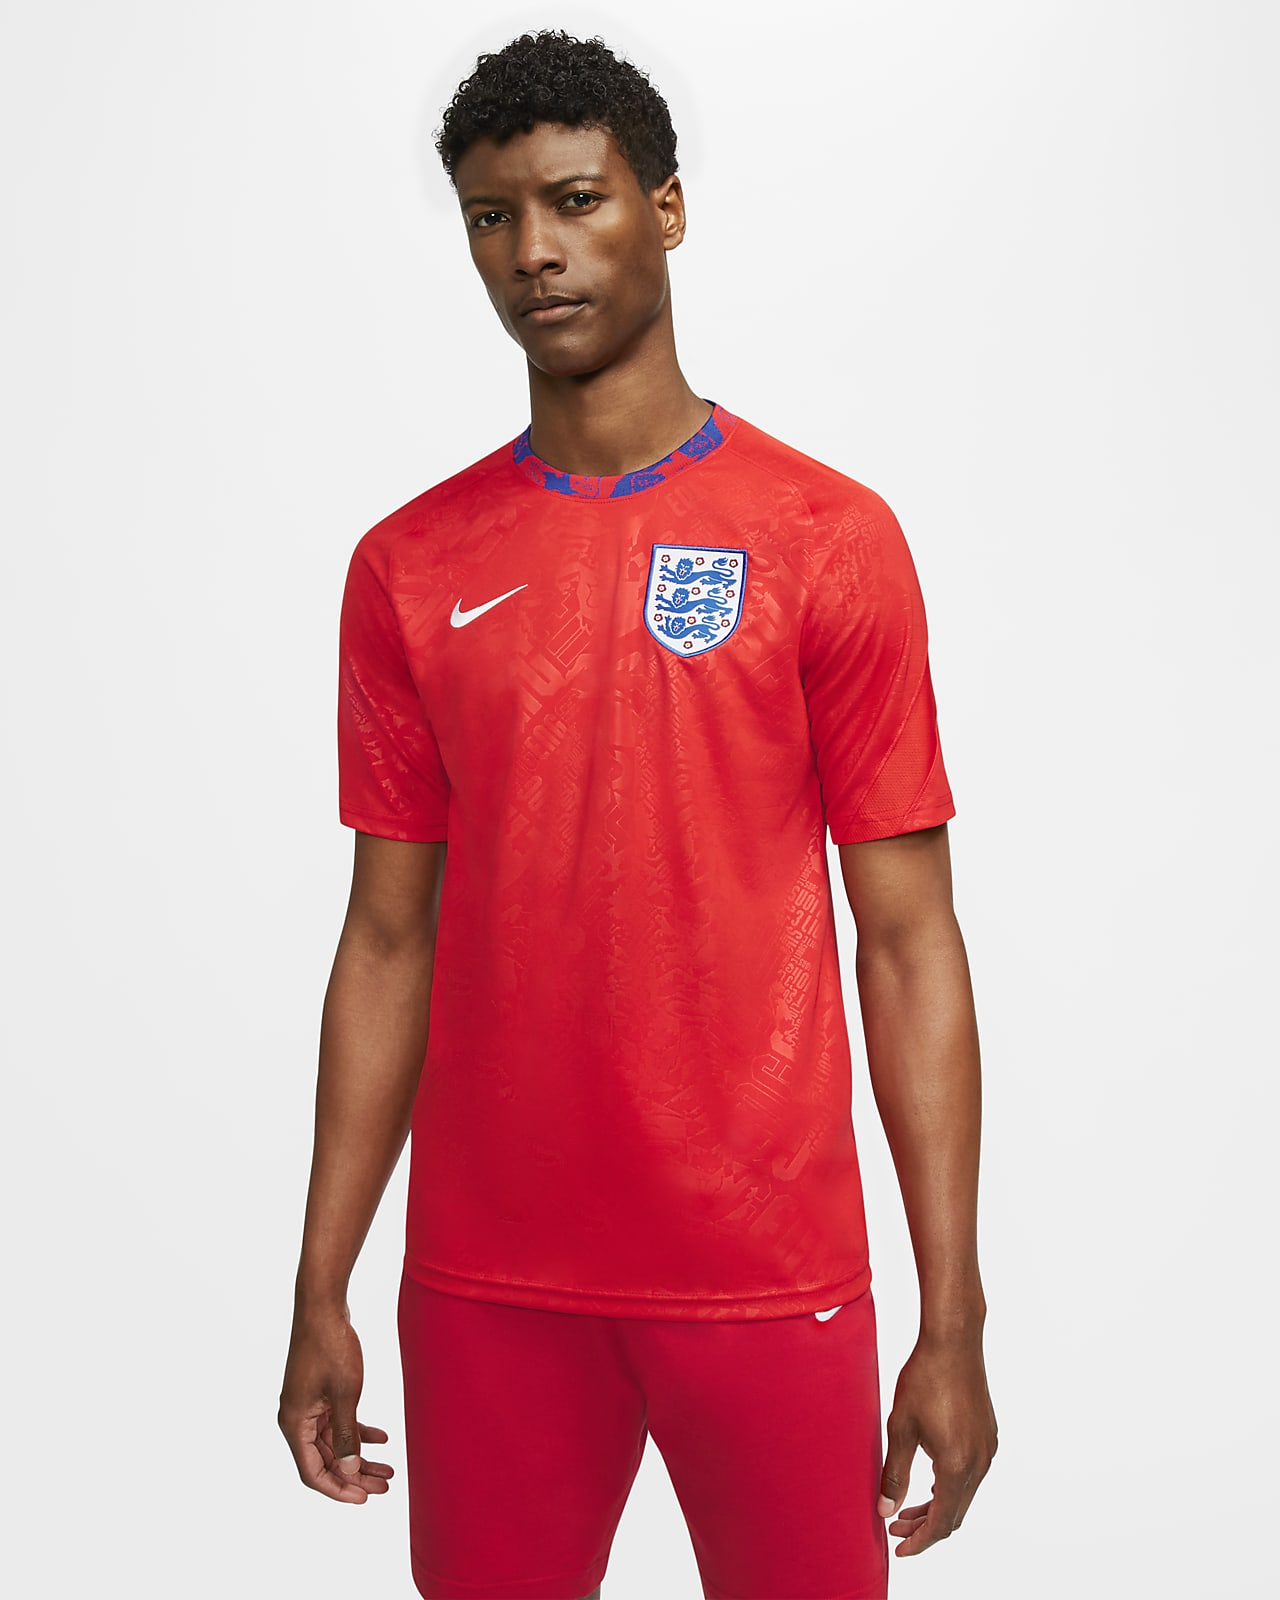 England Men's Short-Sleeve Football Top